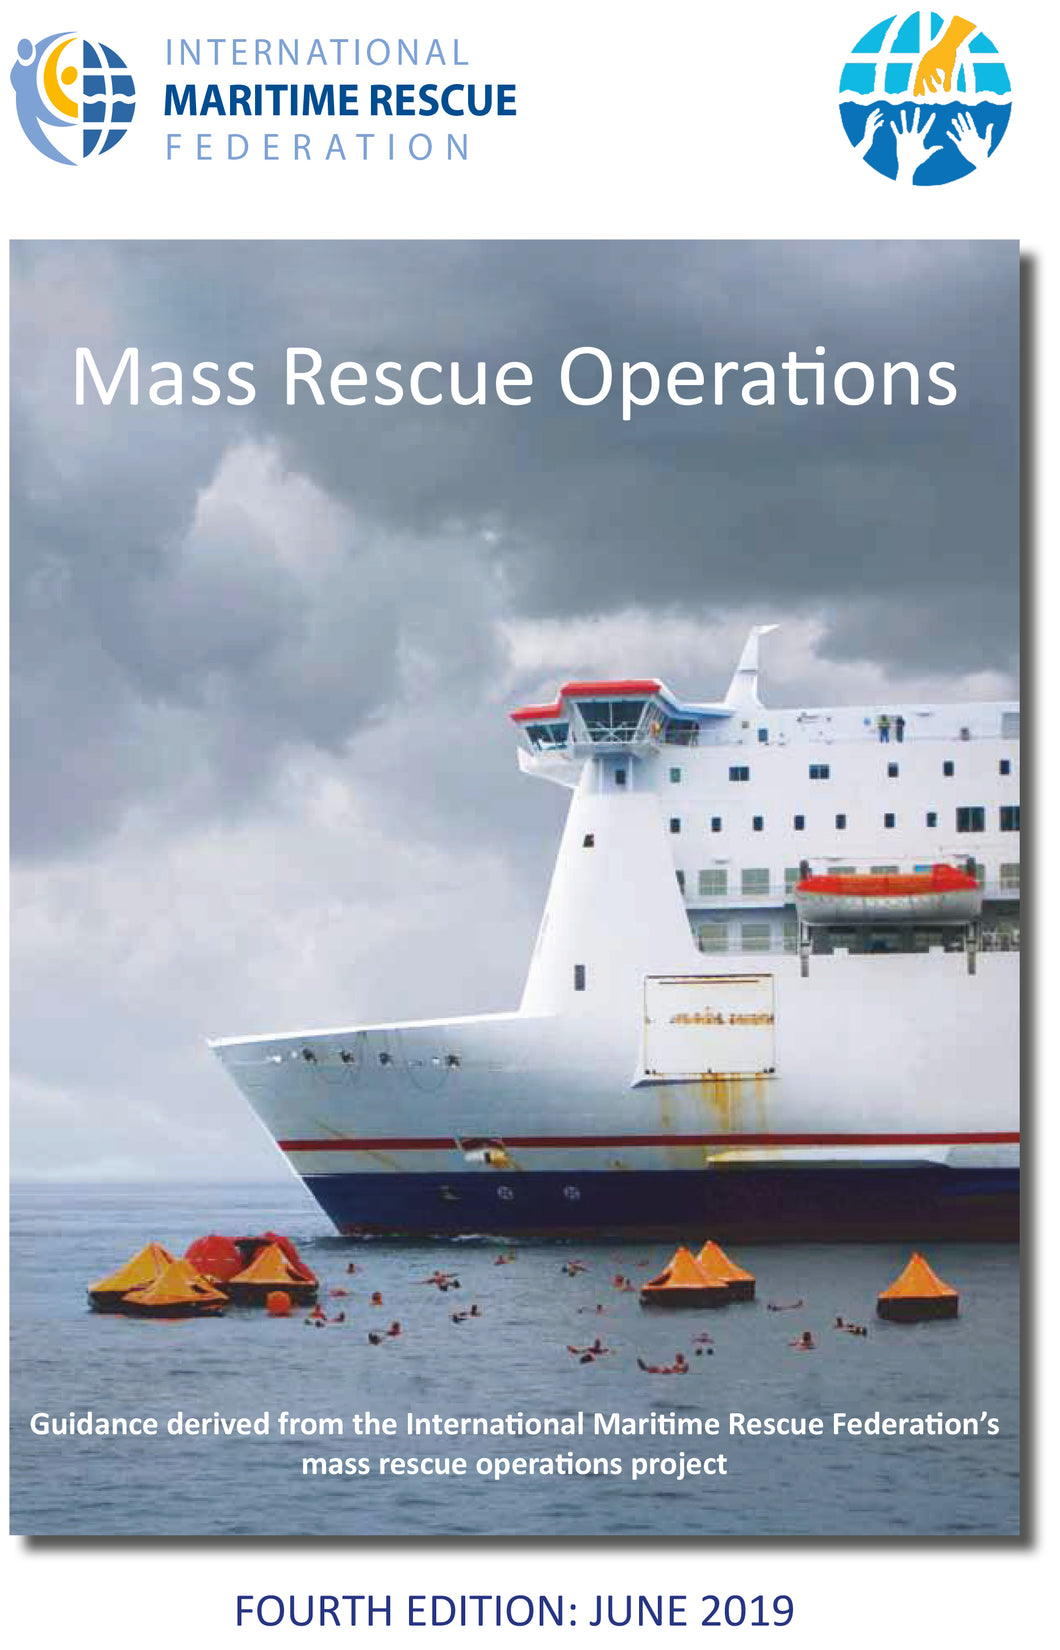 IMRF Mass Rescue Operations Guidance - E-book - 4th Edition - English